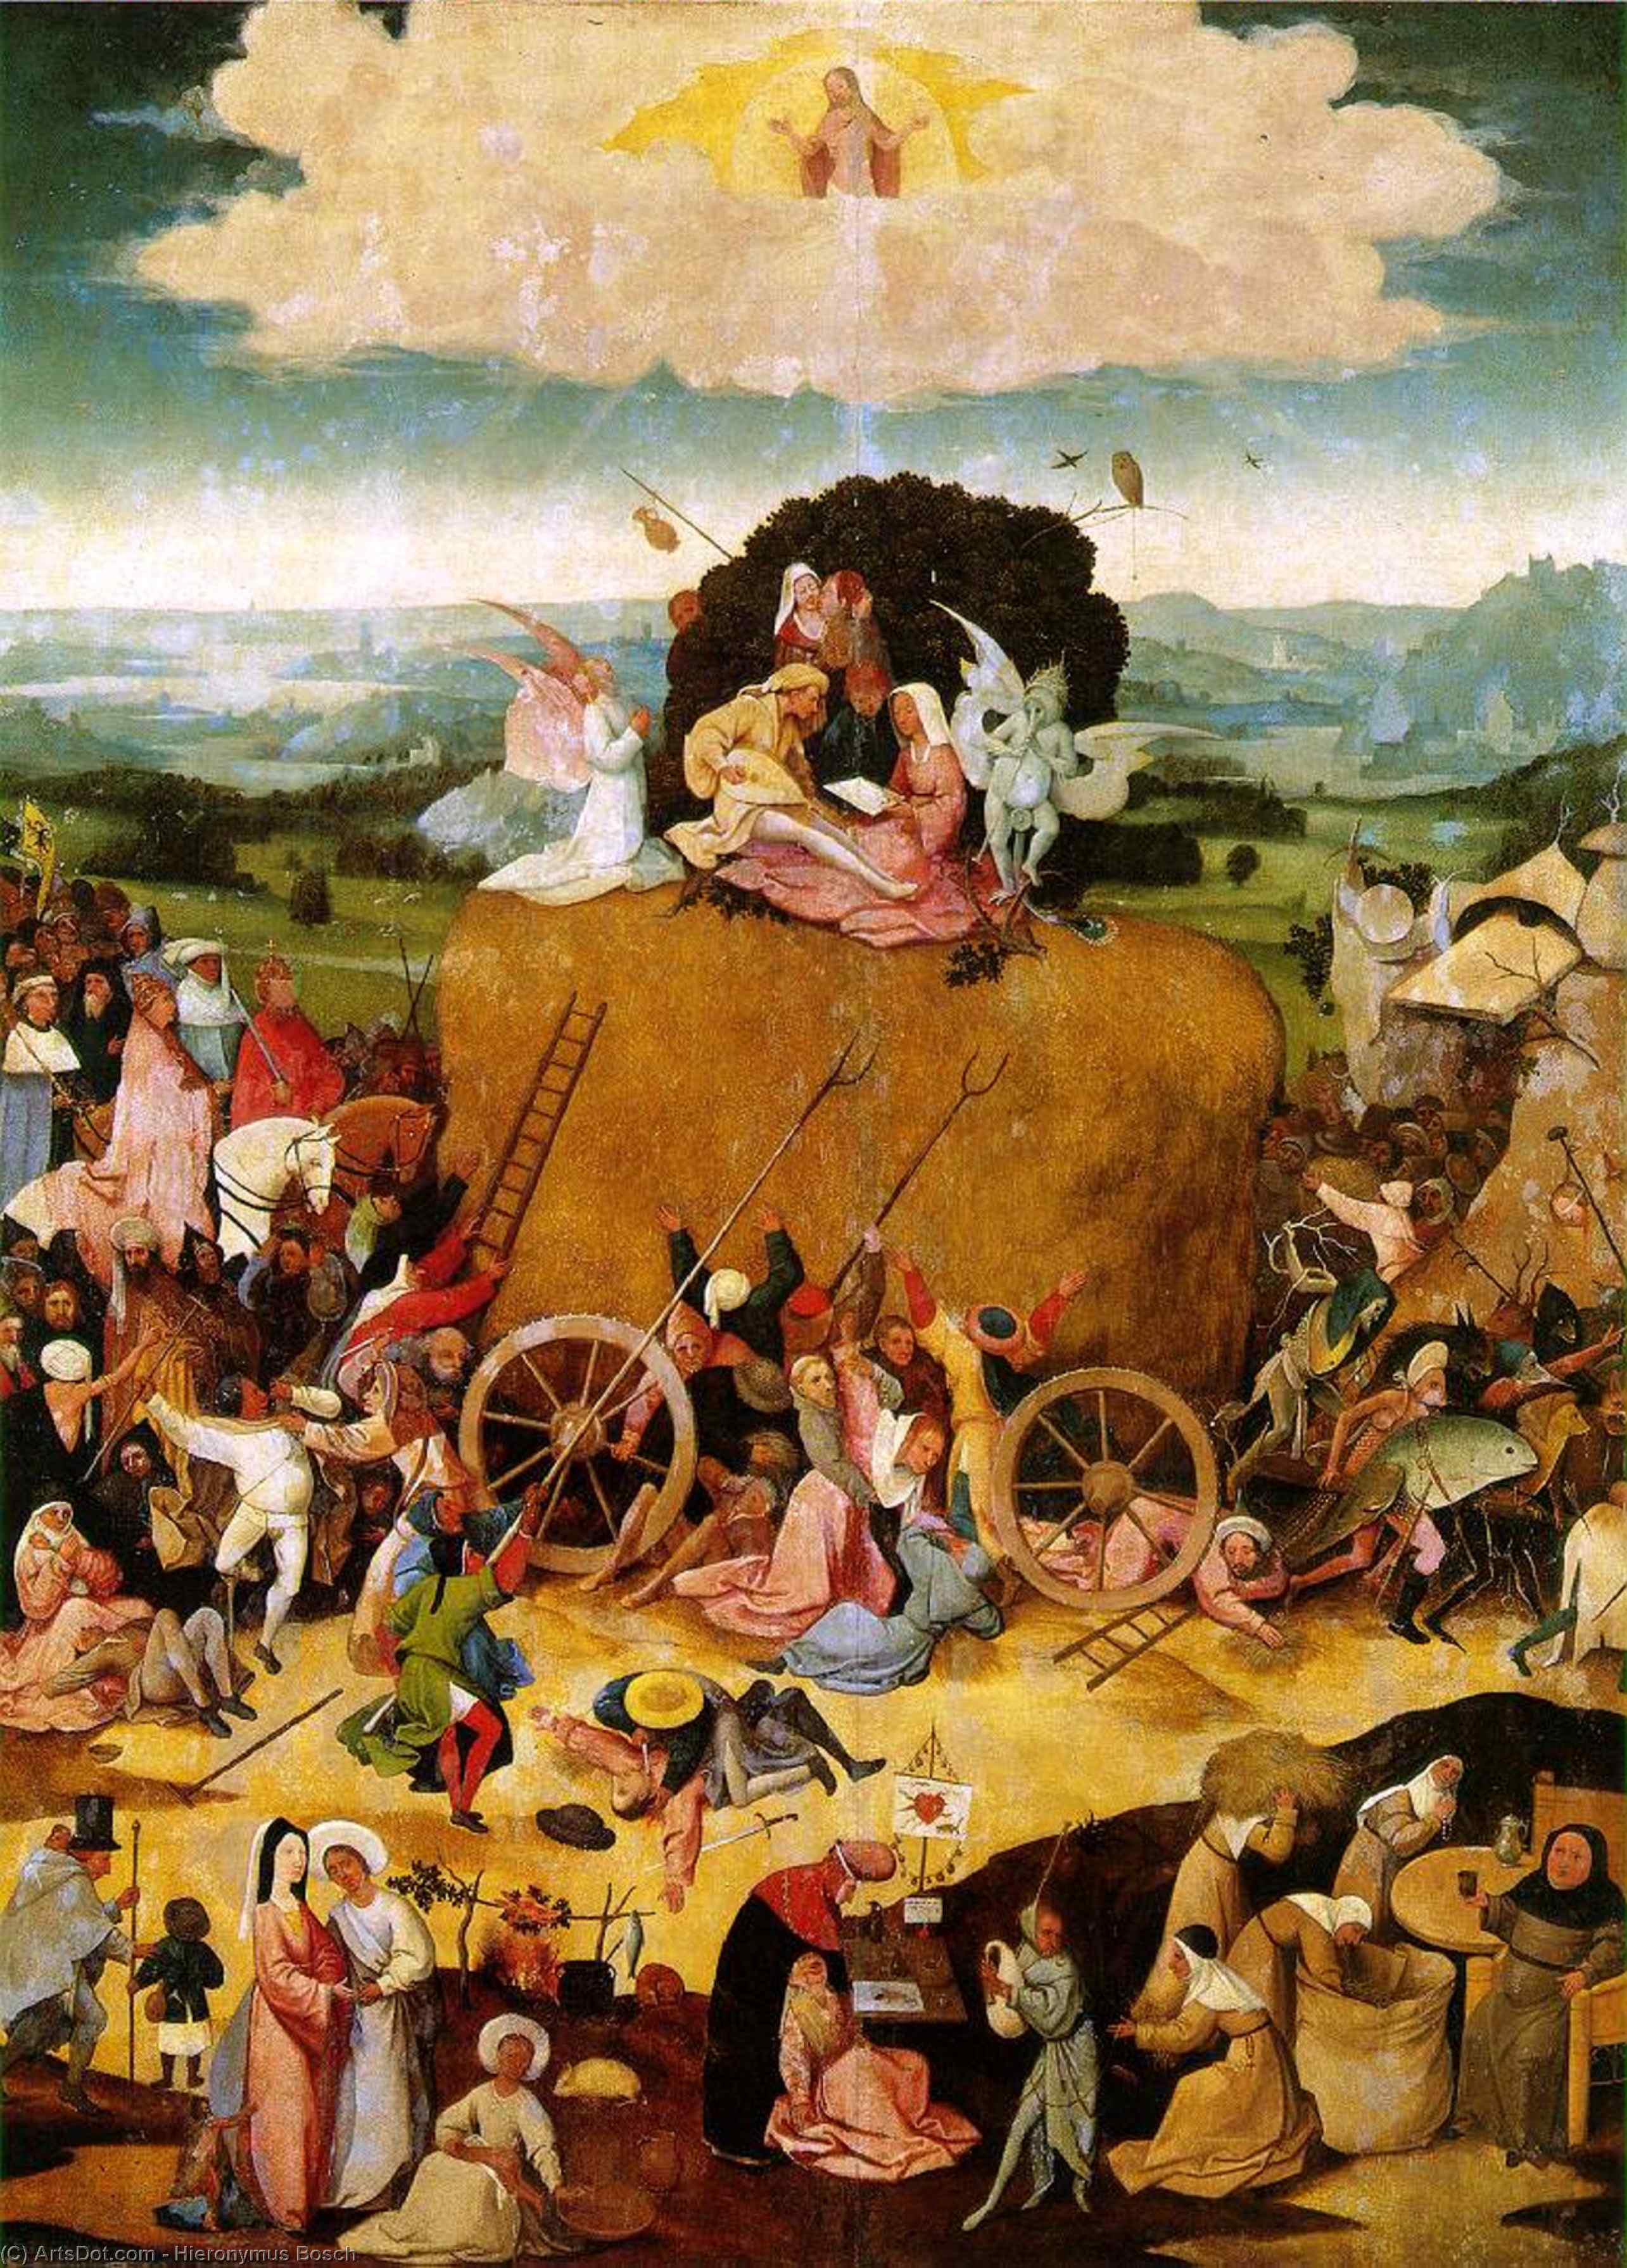 Wikioo.org - The Encyclopedia of Fine Arts - Painting, Artwork by Hieronymus Bosch - Triptych of Haywain (central panel)